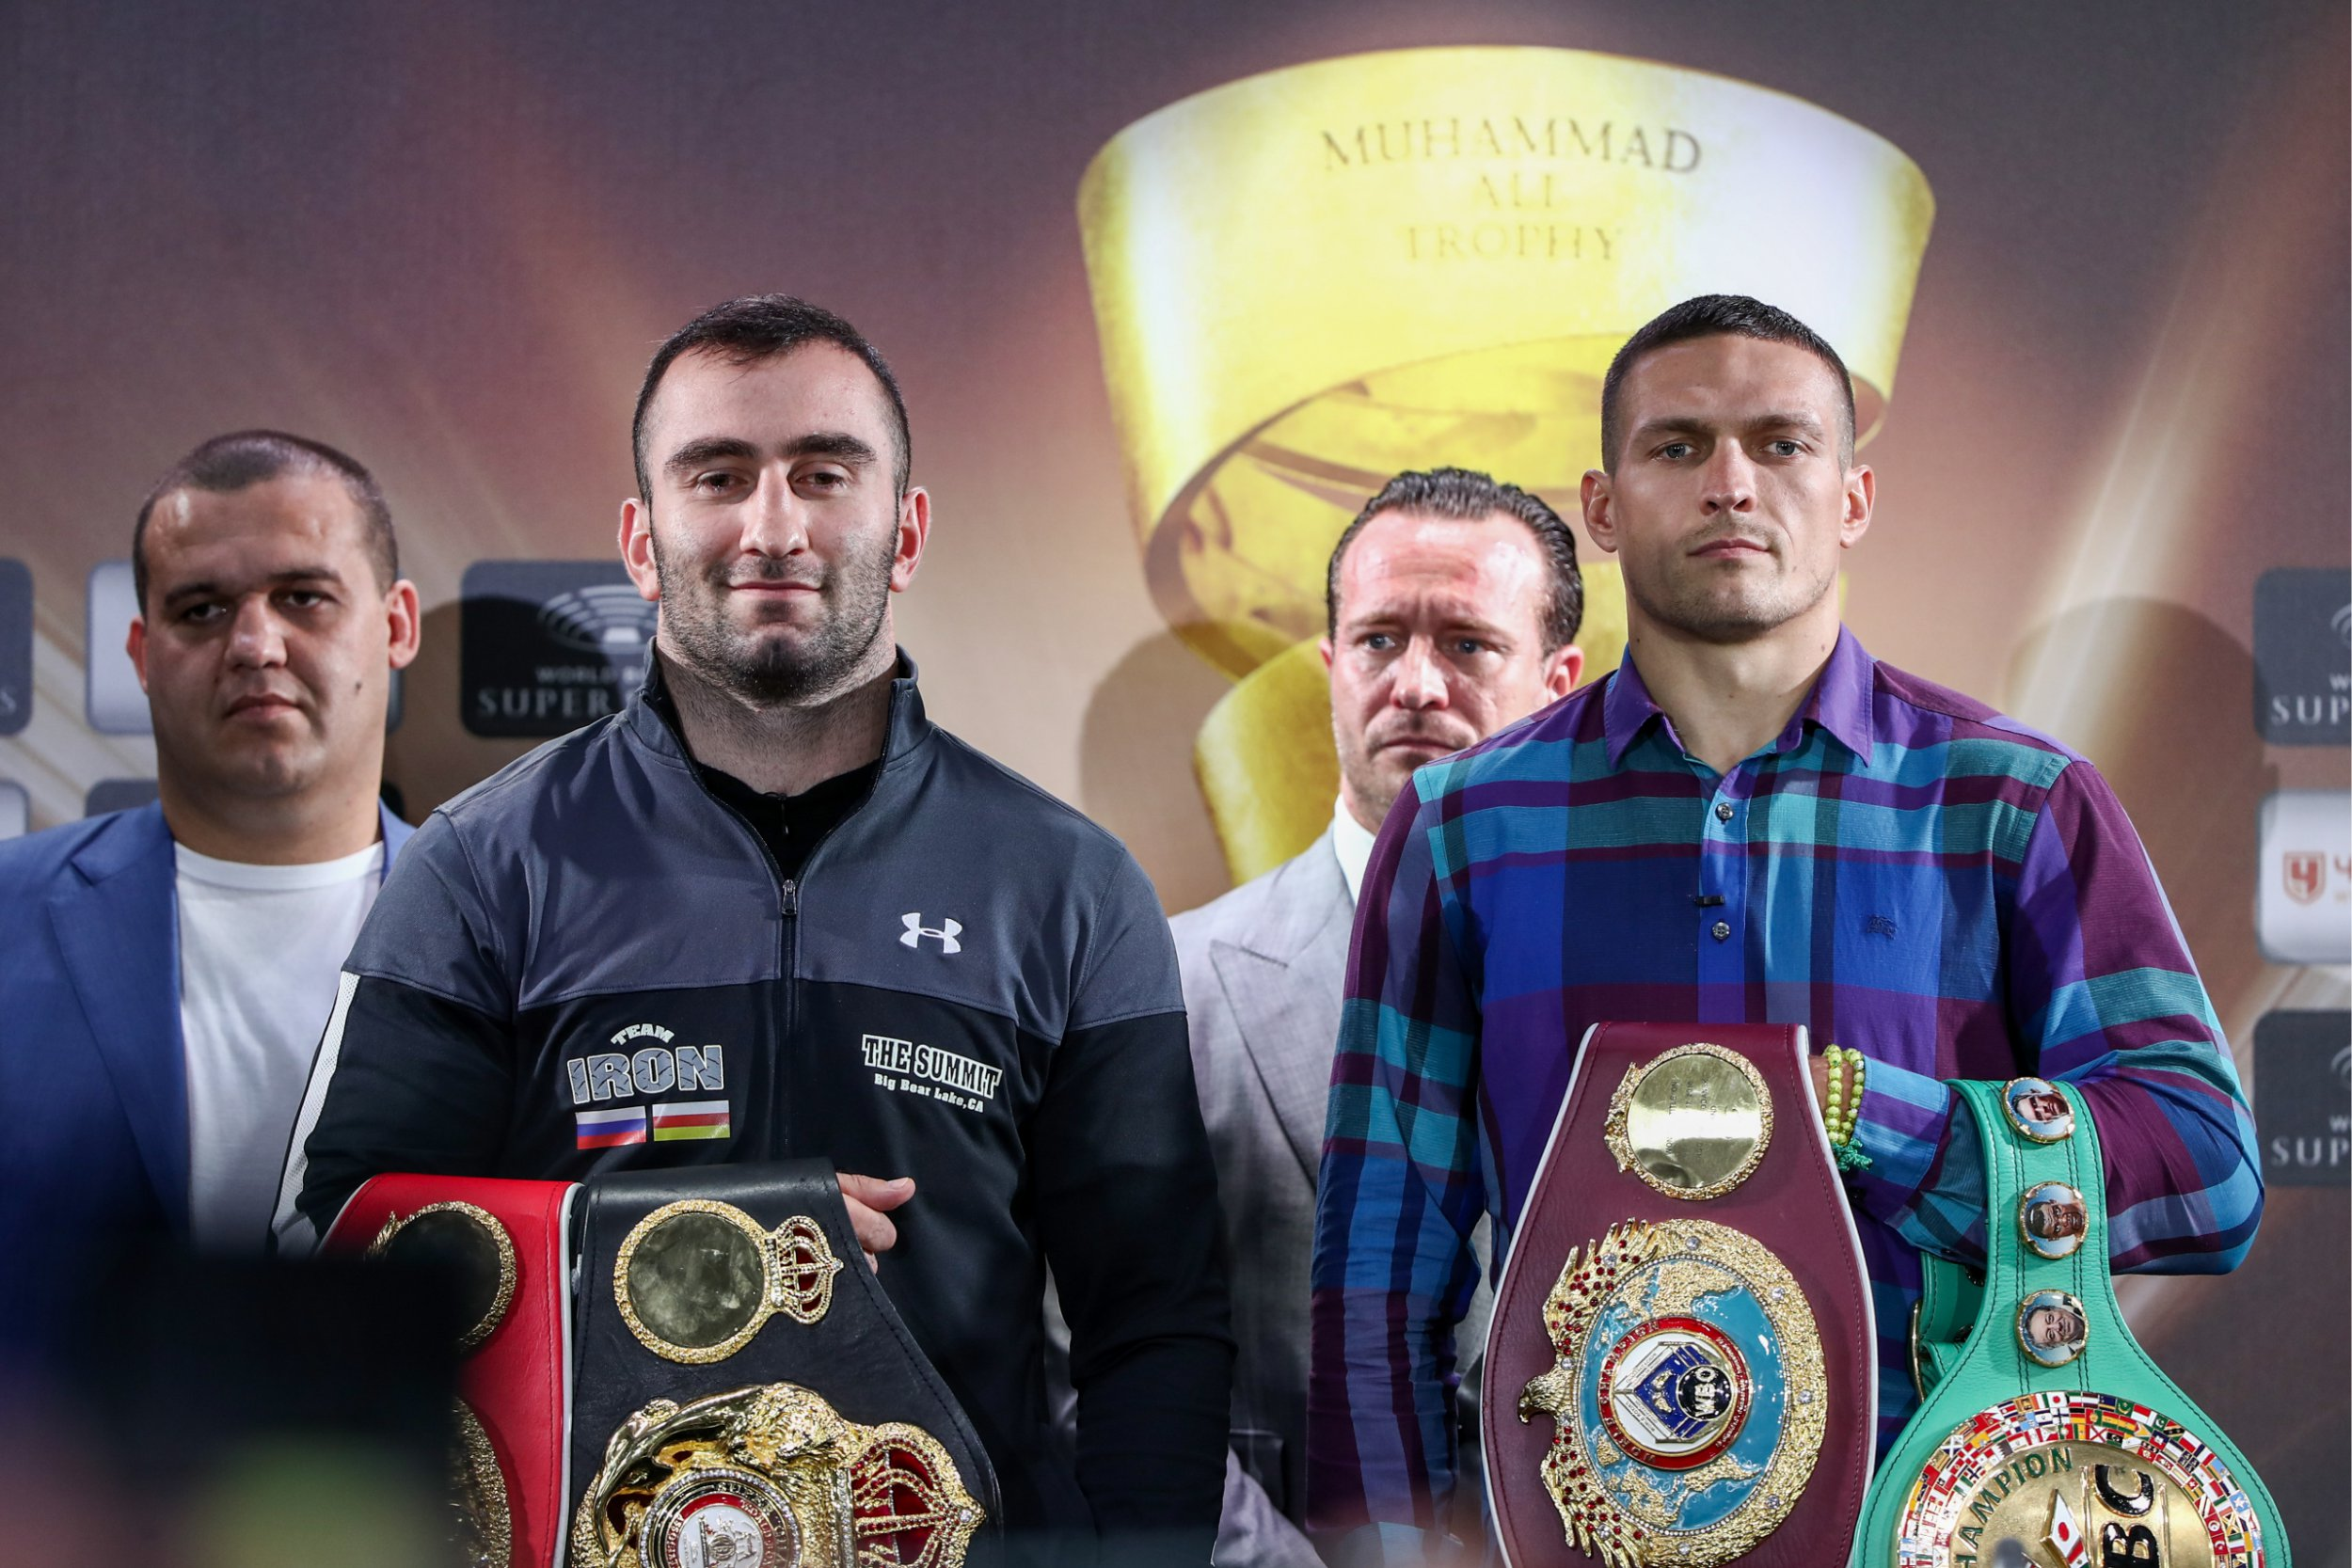 MOSCOW, RUSSIA JULY 19, 2018: Umar Kremlyov, Secretary General of the Russian Boxing Federation, Russian boxer Murat Gassiev, Kalle Sauerland, Chief Boxing Officer for Comosa AG, and Ukrainian boxer Oleksandr Usyk (L-R) at a news conference on the upcoming 2017/18 World Boxing Super Series cruiserweight final between Murat Gassiev and Oleksandr Usyk for the WBC, WBO, WBA, and IBF titles. Valery Sharifulin/TASS (Photo by Valery Sharifulin\TASS via Getty Images)